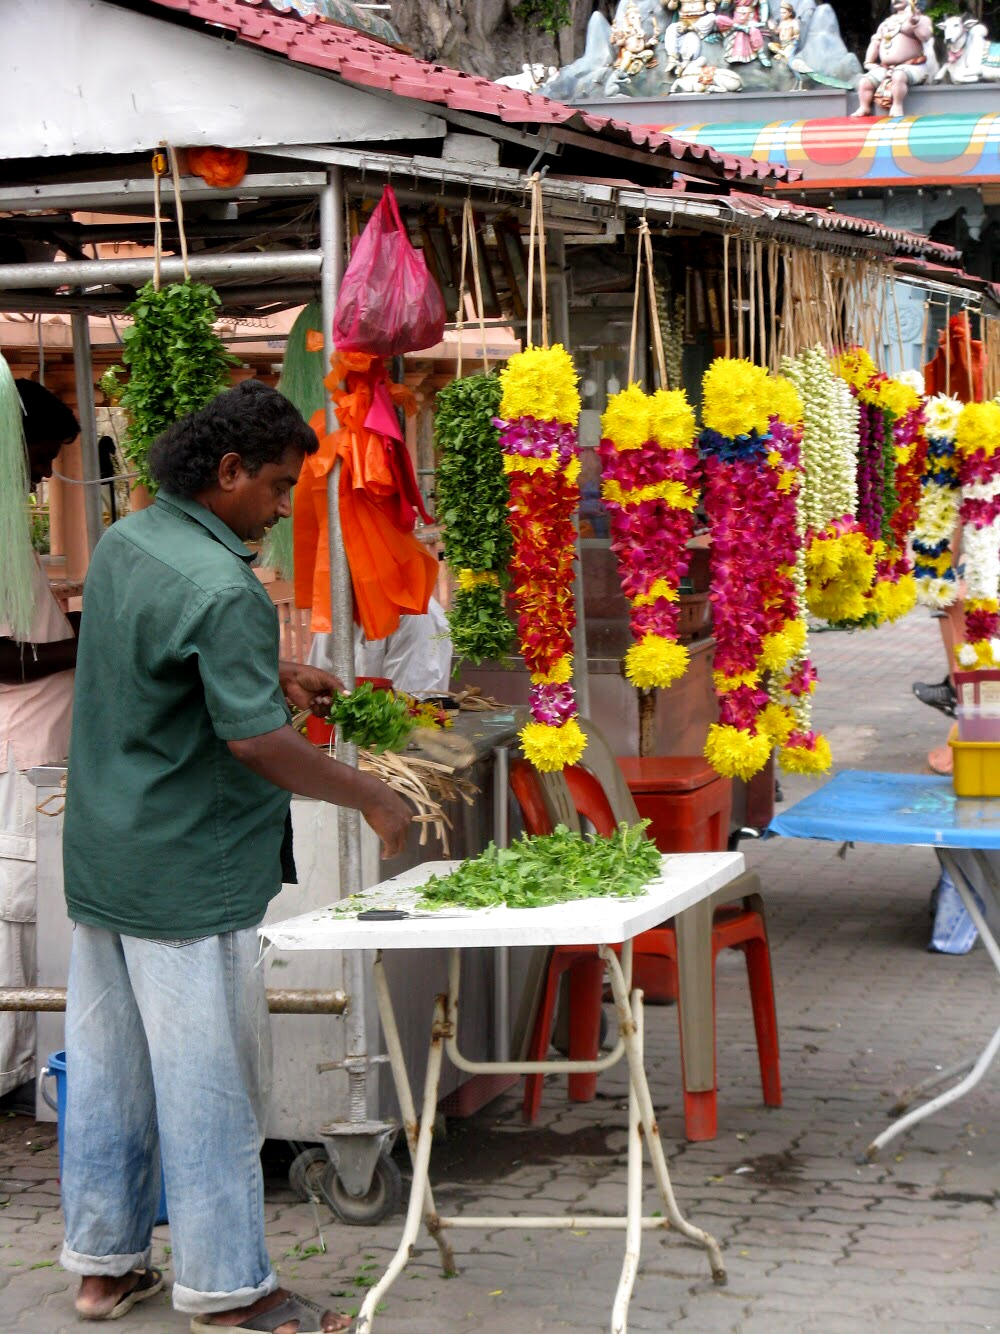 At the base of the stairs, vendors sells floral offerings to the gods